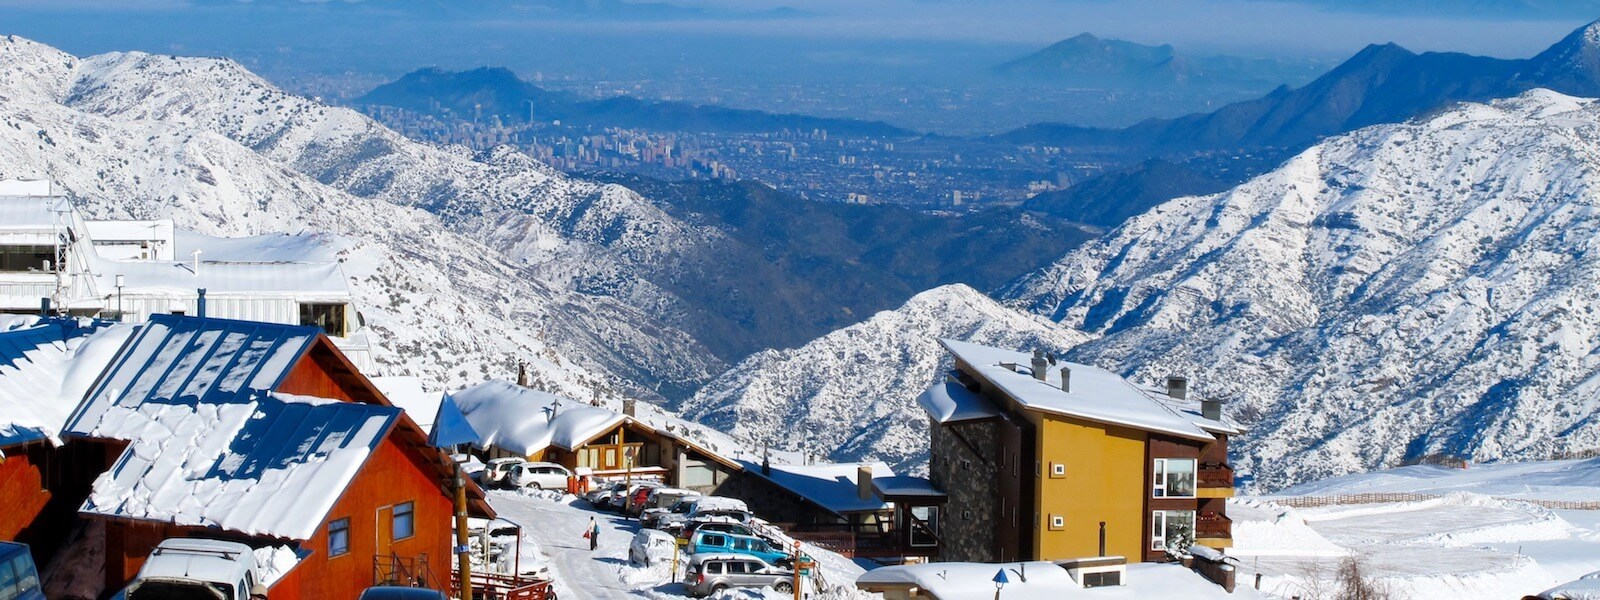 Skiing In Chile 2019 S Ultimate Ski Resort Backcountry Guide